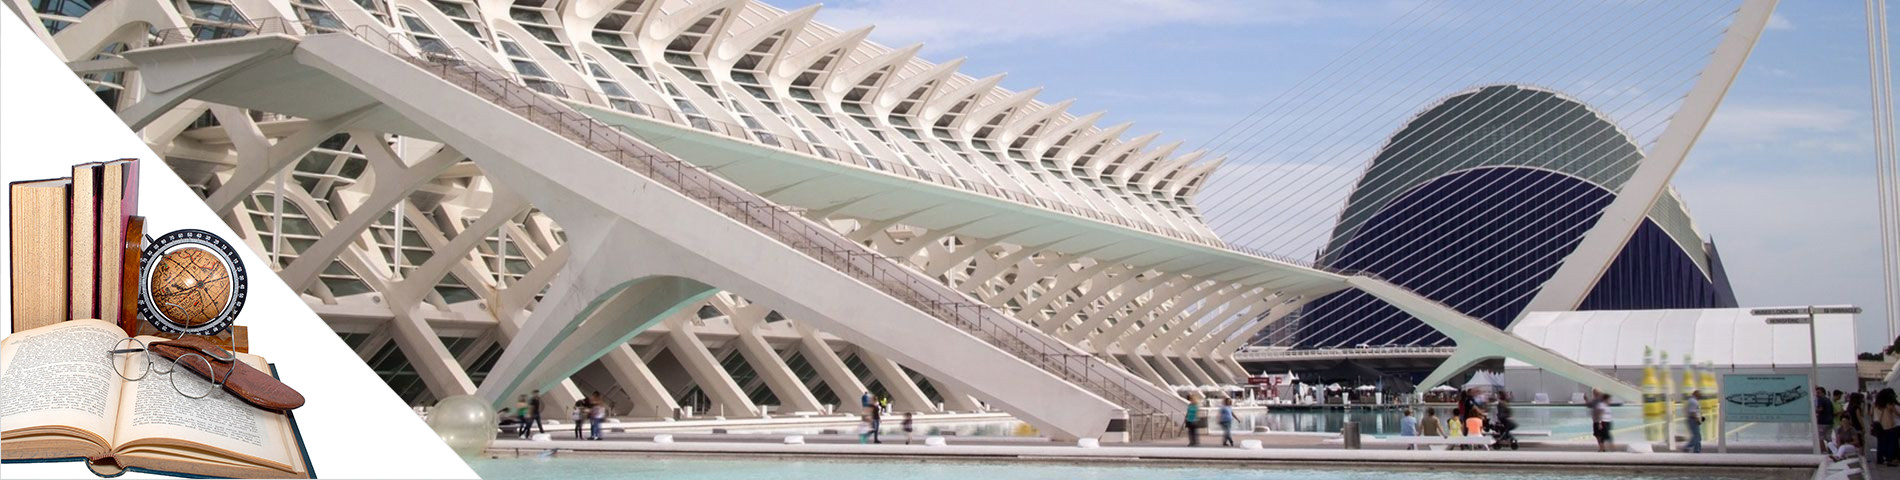 Valencia - Spanish & Arts & Literature